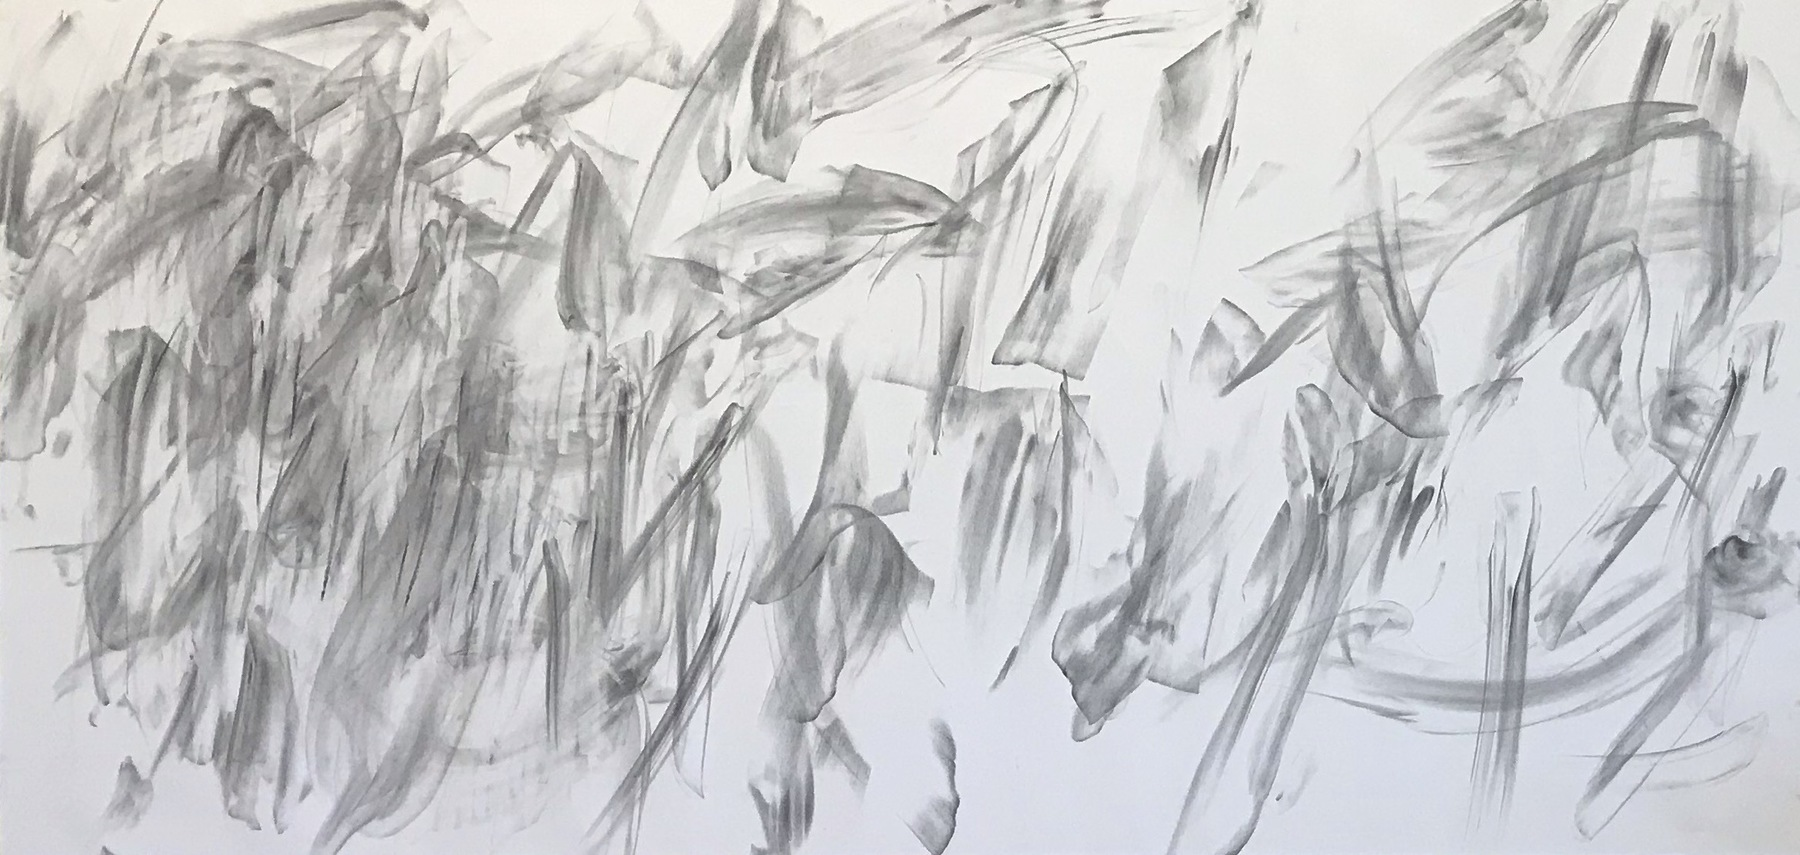 Graphite | Charcoal on Rives  62 x 84 inches